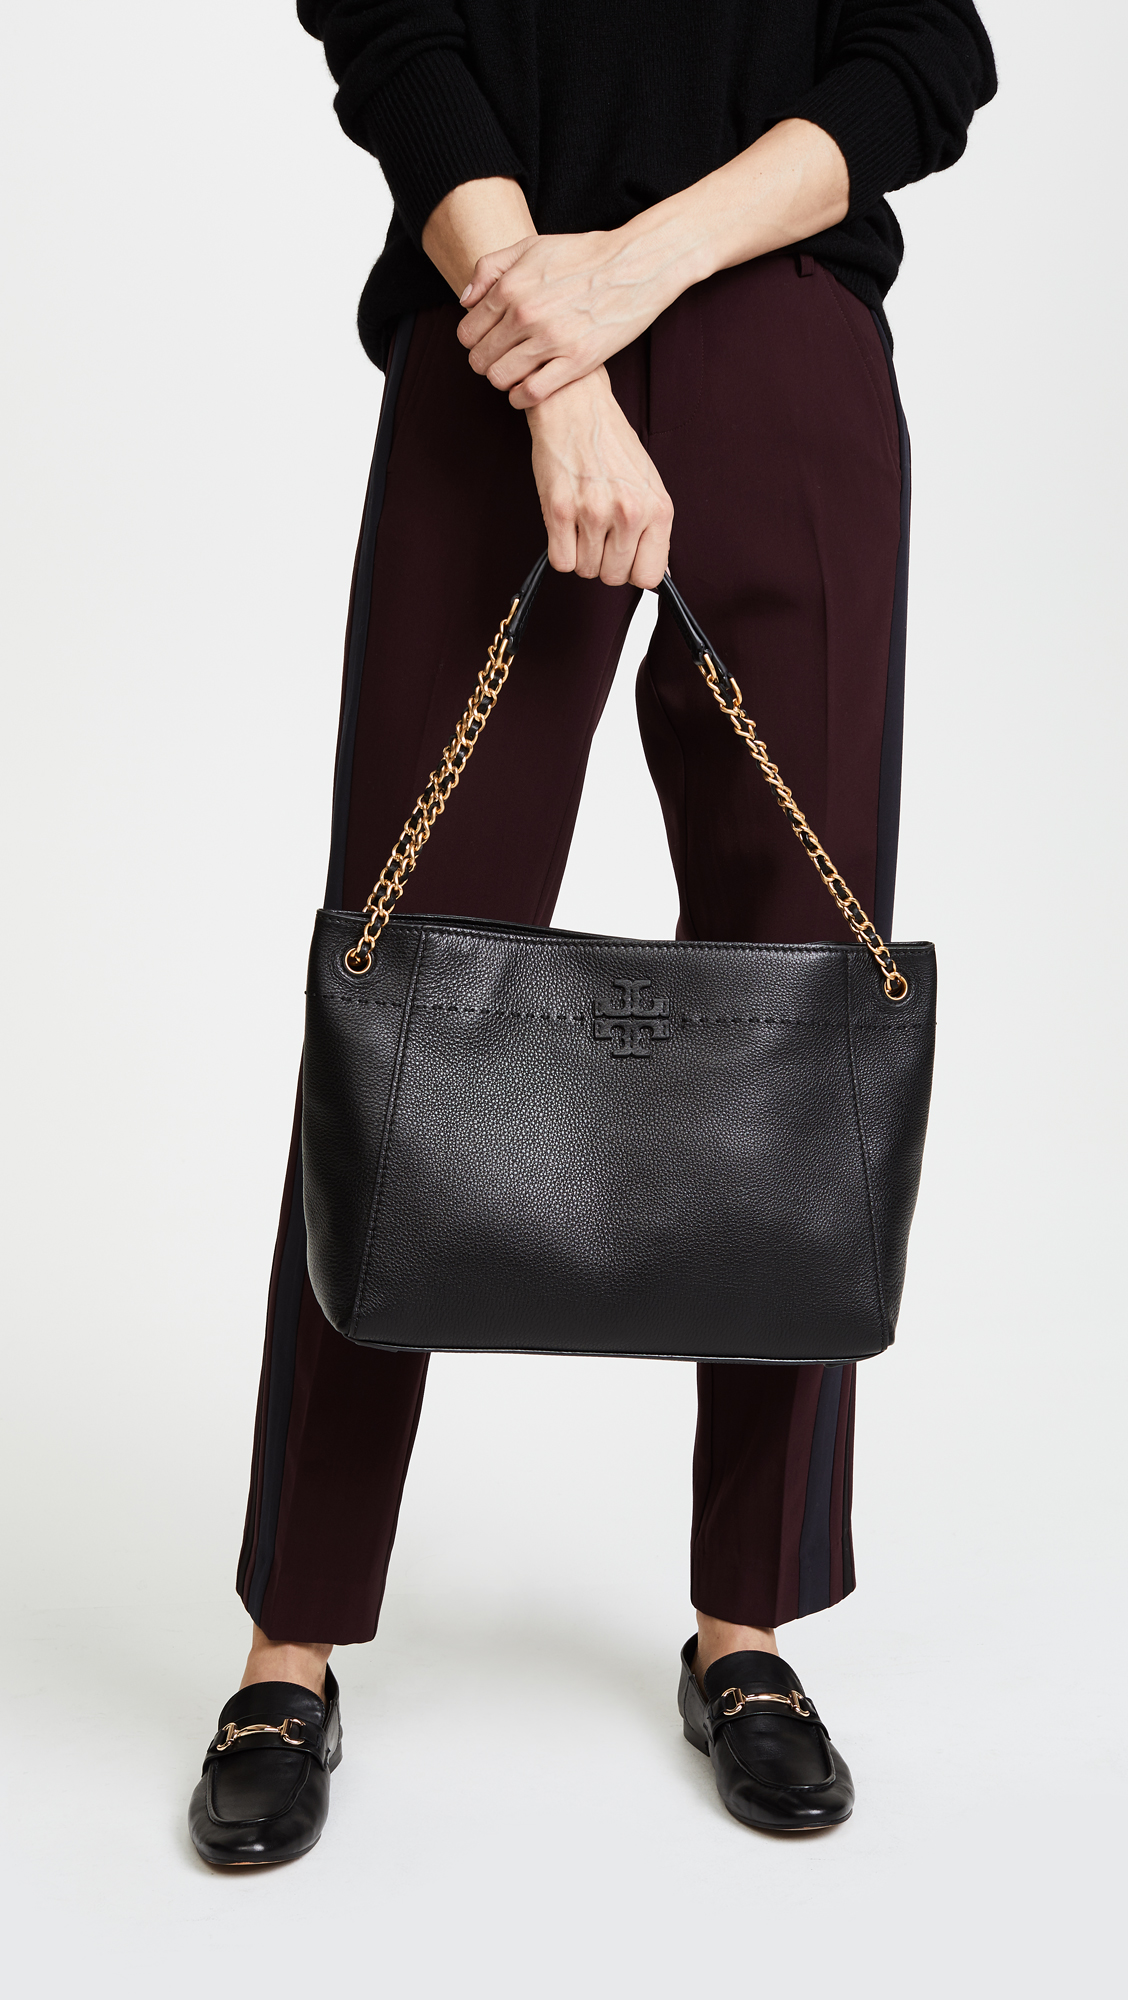 b8b1821bcab Tory Burch Mcgraw Chain Shoulder Slouchy Tote